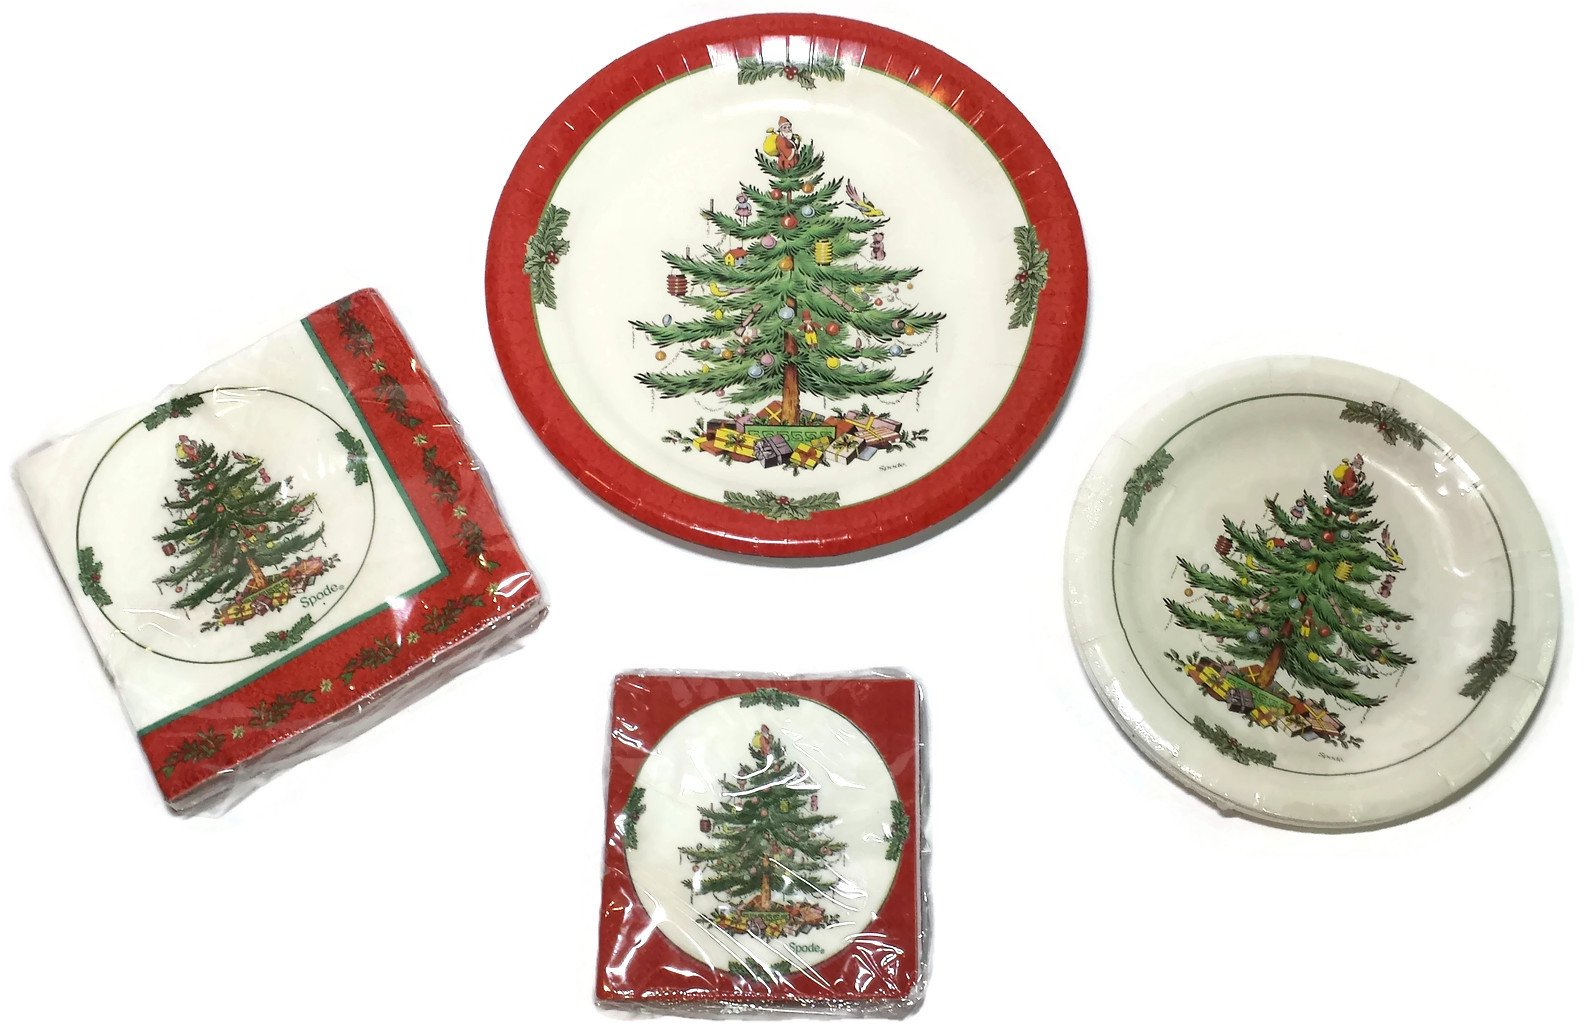 Spode Christmas Tree Paper Plates and Napkins Bundle - 8 Coated Dinner Plates (1 set), 8 Coated Luncheon Plates (1 set), 20 3-Ply Lunch Napkins (1 set), 20 3-Ply Beverage Napkins (1 set) (56 Total Pieces)